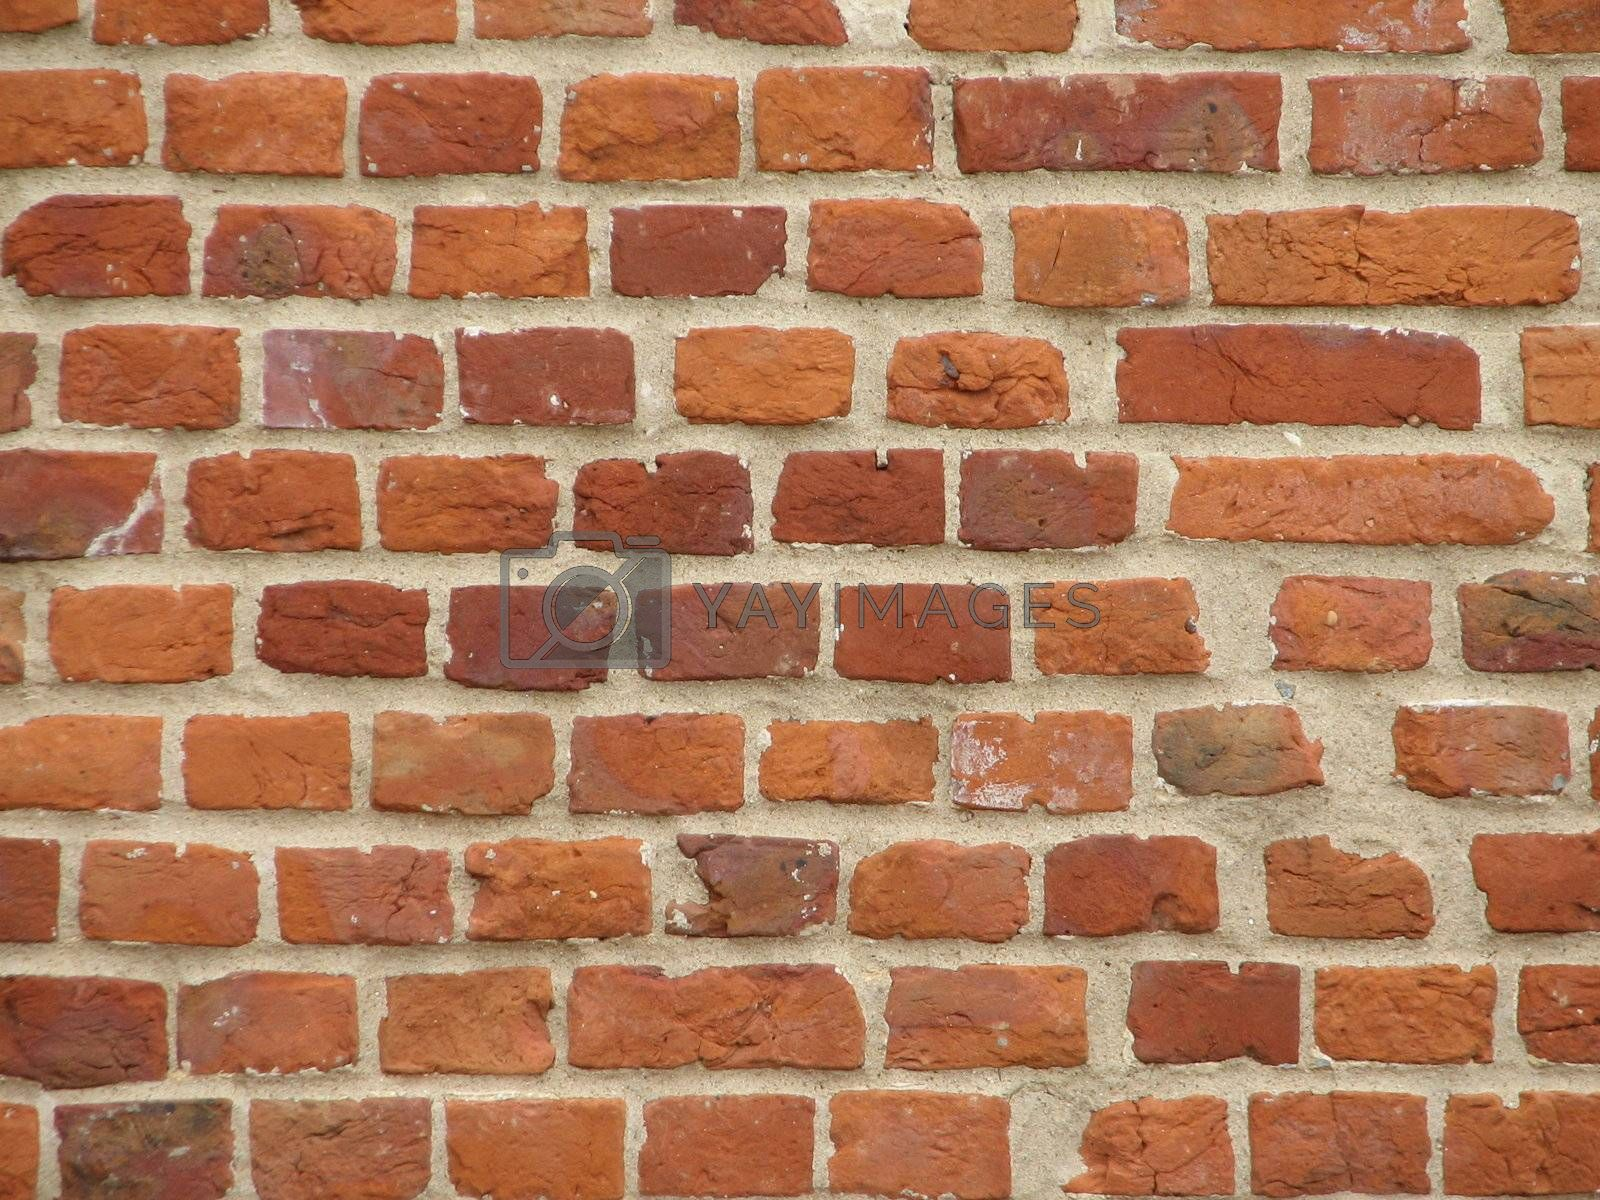 Brick wall as a stone background